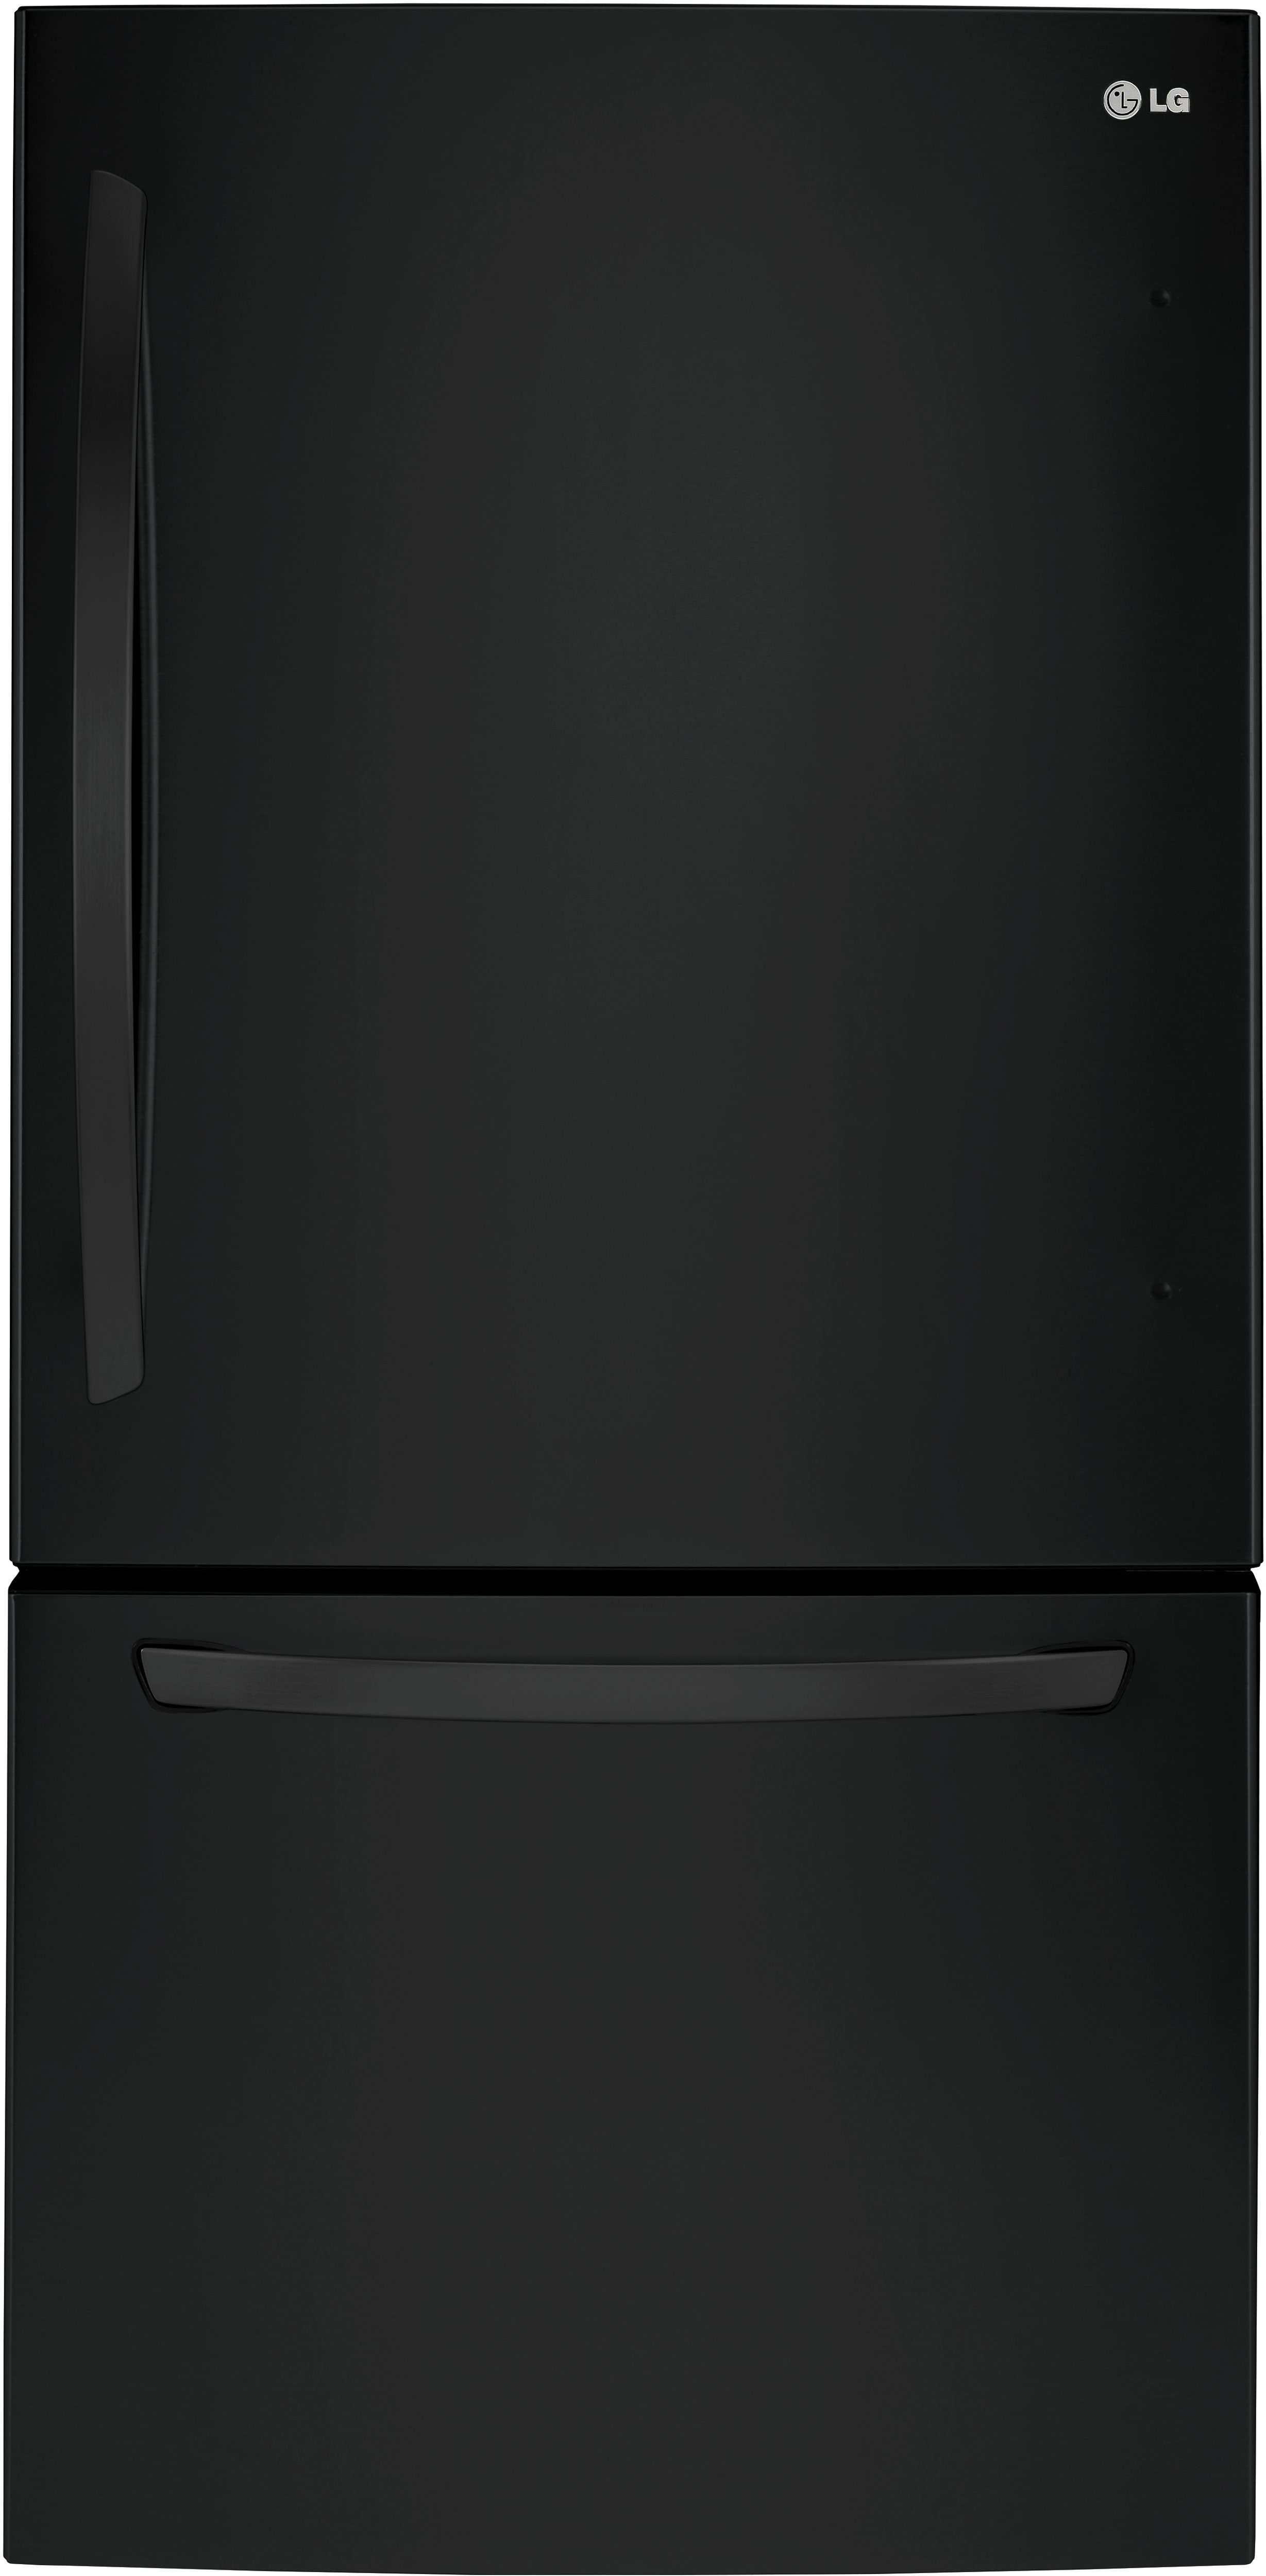 The LG LDCS24223B comes with a smooth black finish, and will likely cost the same as the white model.